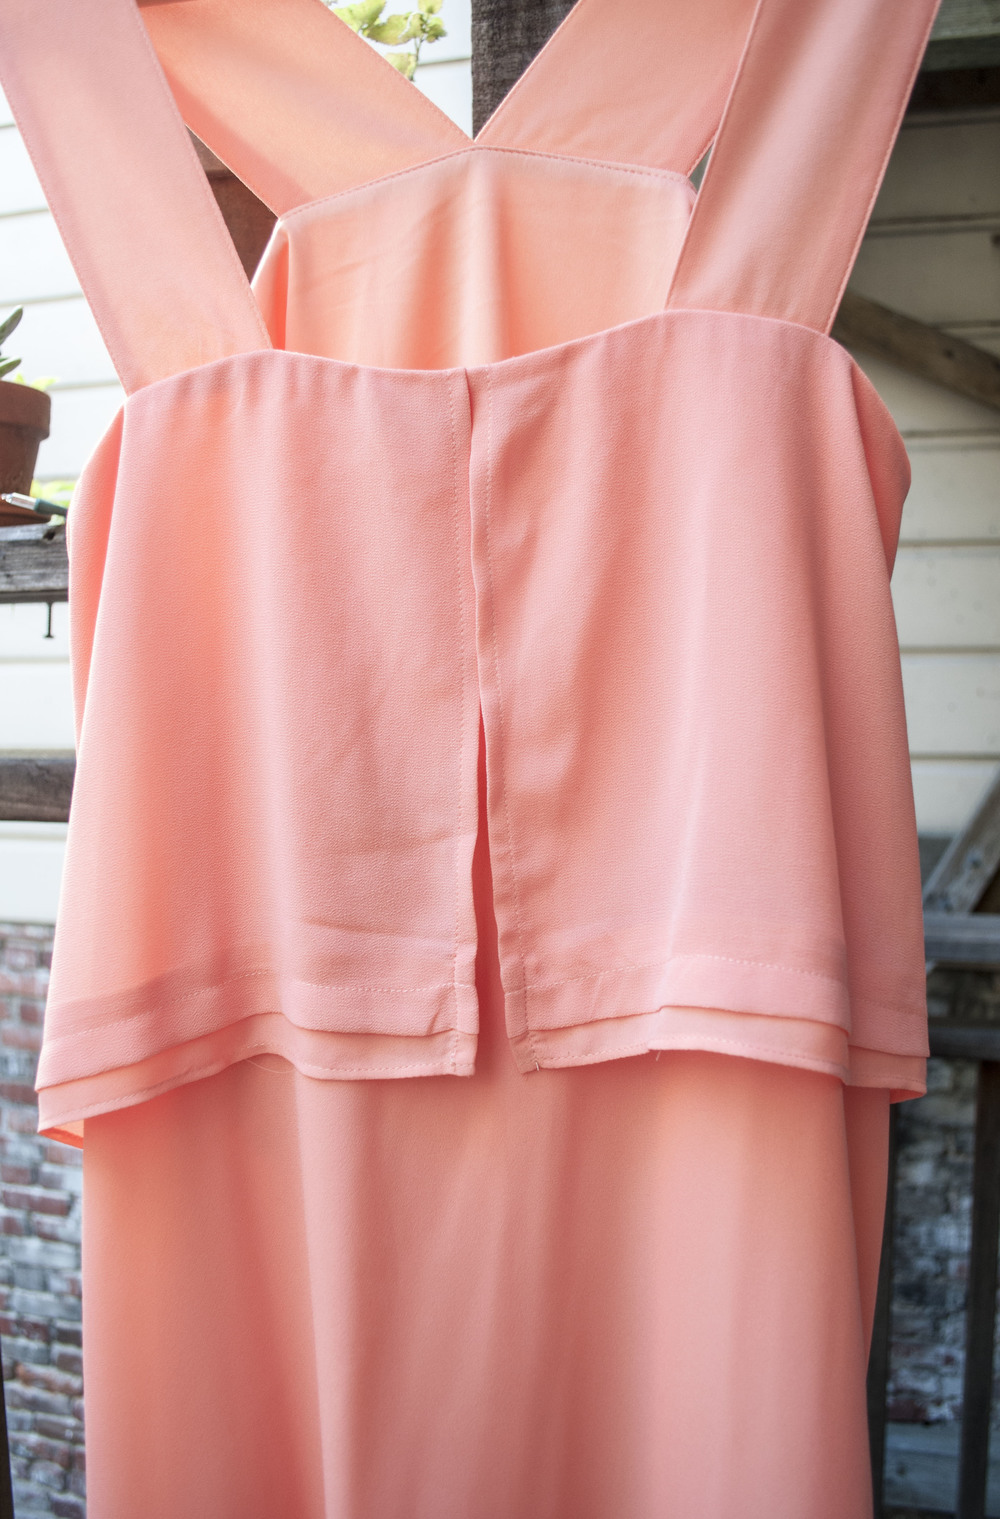 So easily wrinkled! But the color and cut are super flattering. This is a detail shot of the back. The only major downside is there isn't a zipper so you have to pull the dress over your head.